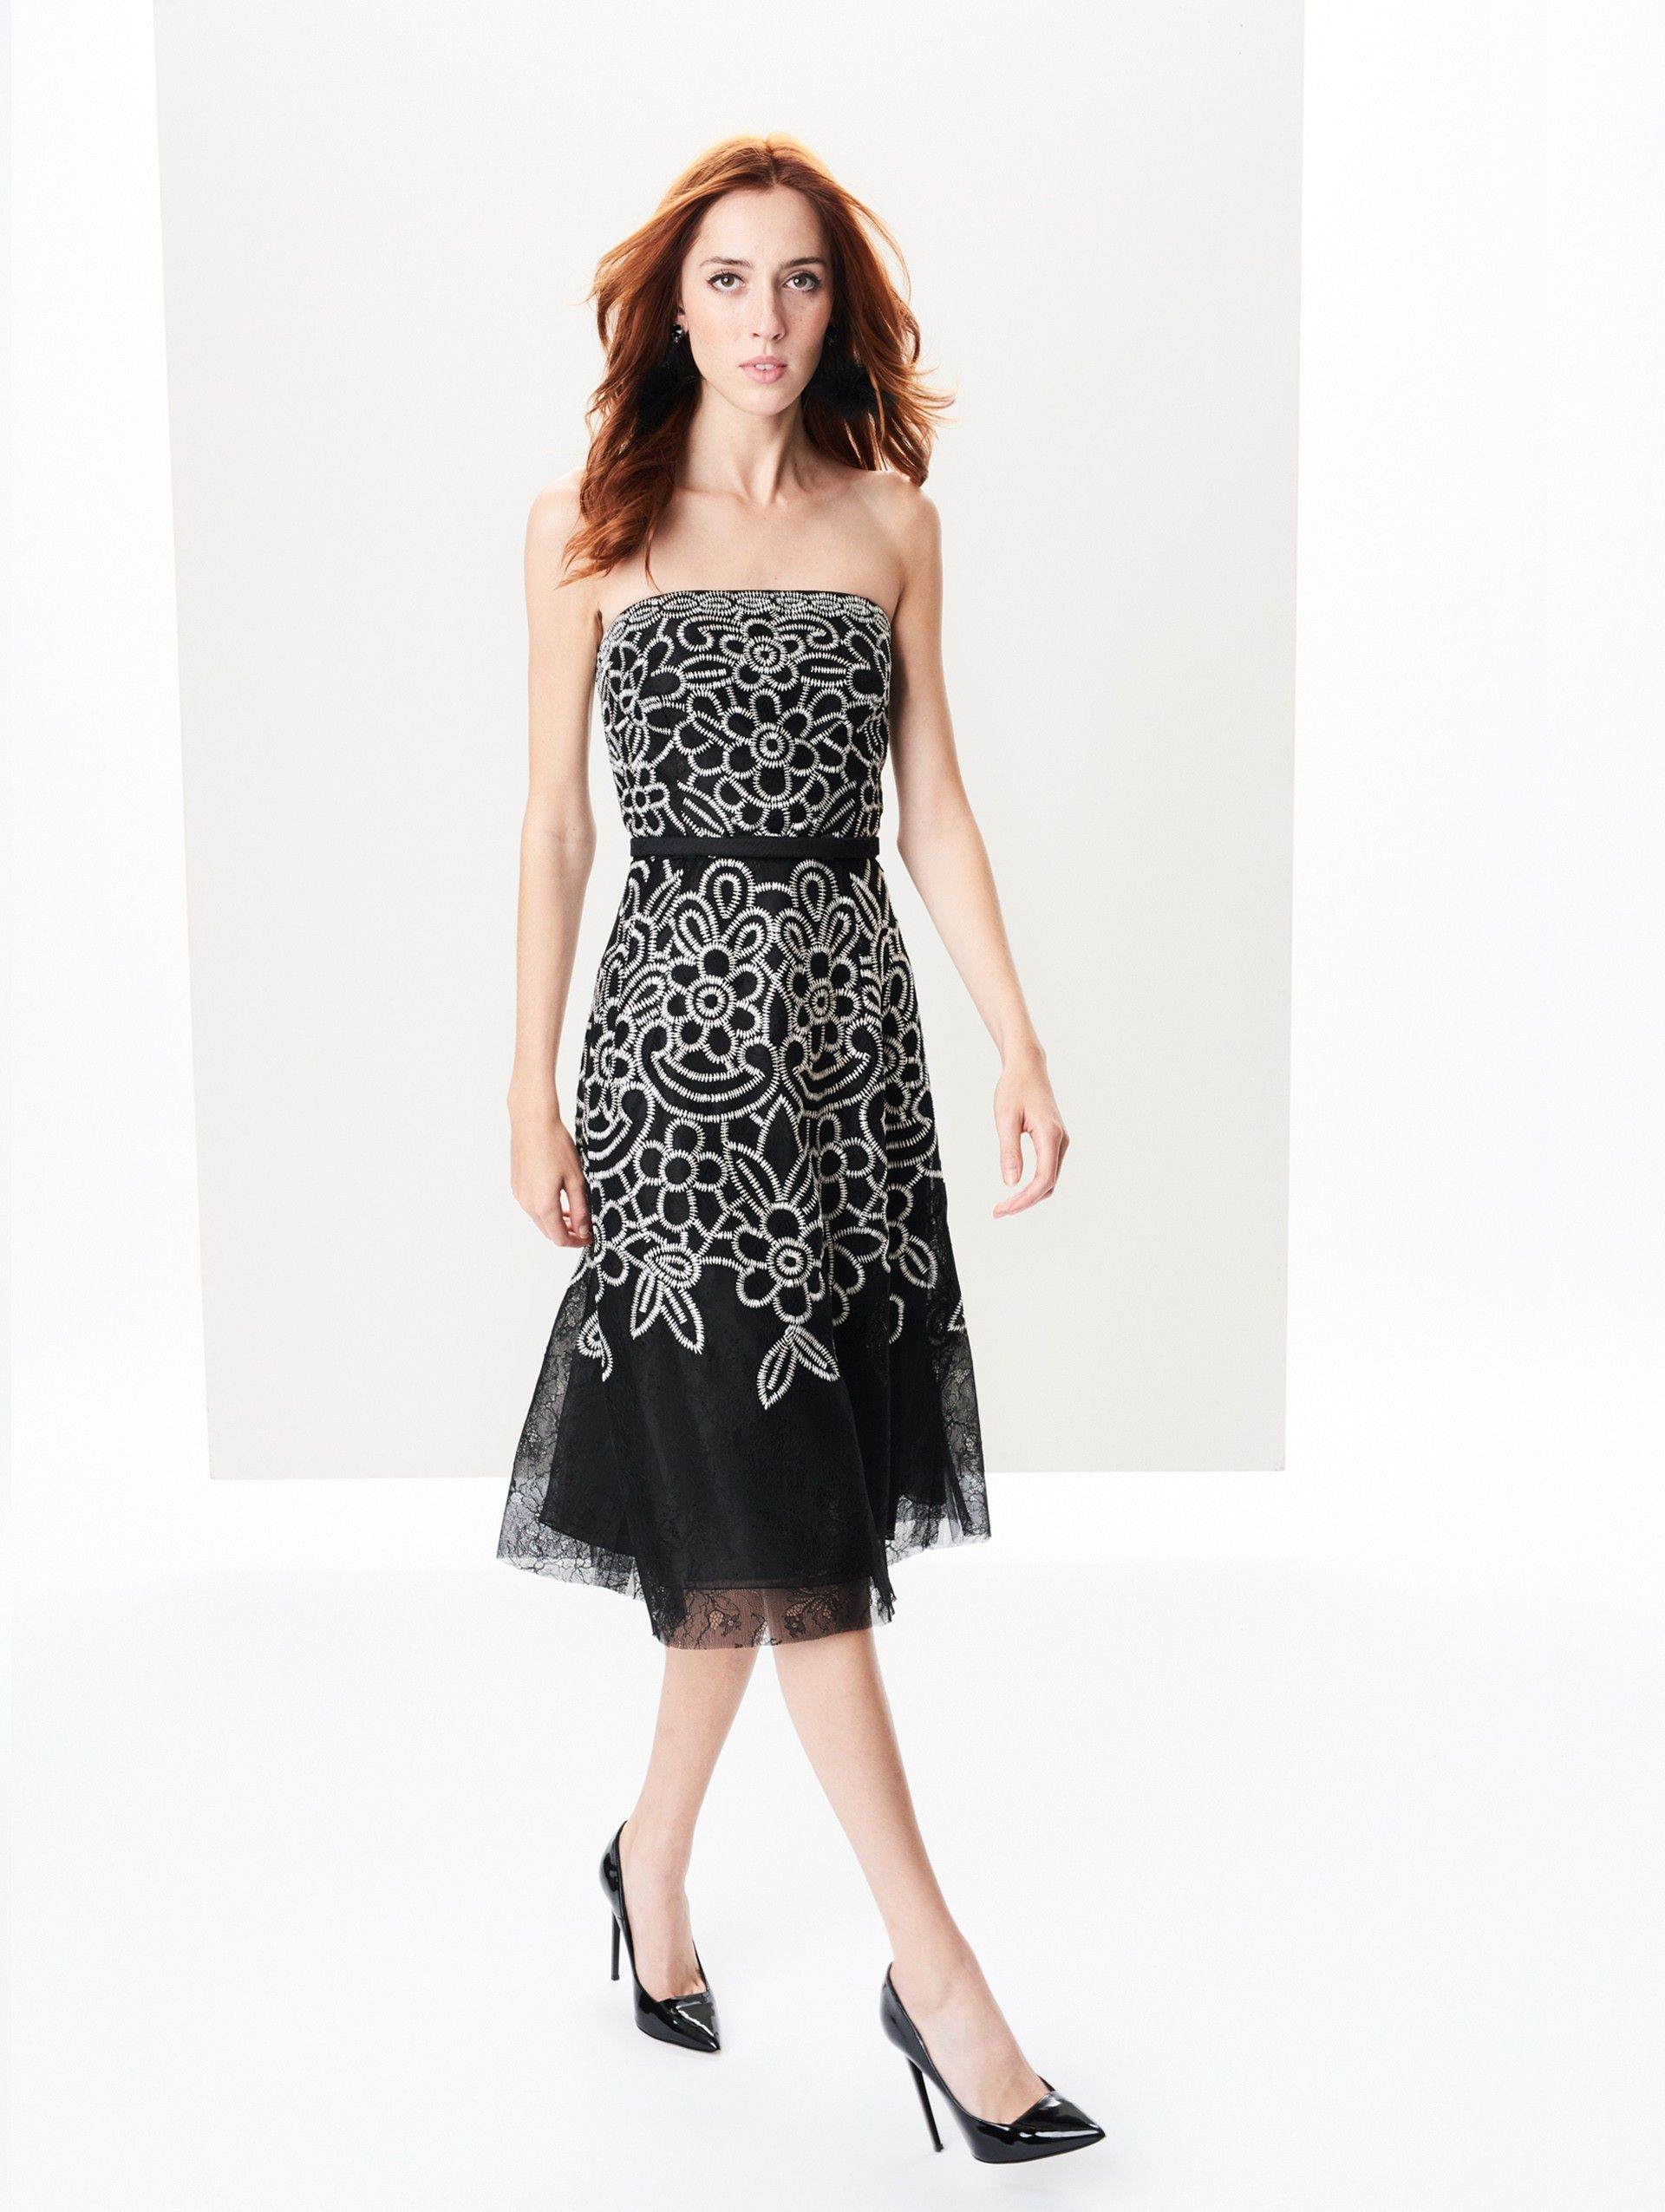 Embroidered Chantilly Lace Cocktail Dress New Arrivals Cocktail Dress Lace Lace Dress Cocktail Dress [ 2551 x 1920 Pixel ]